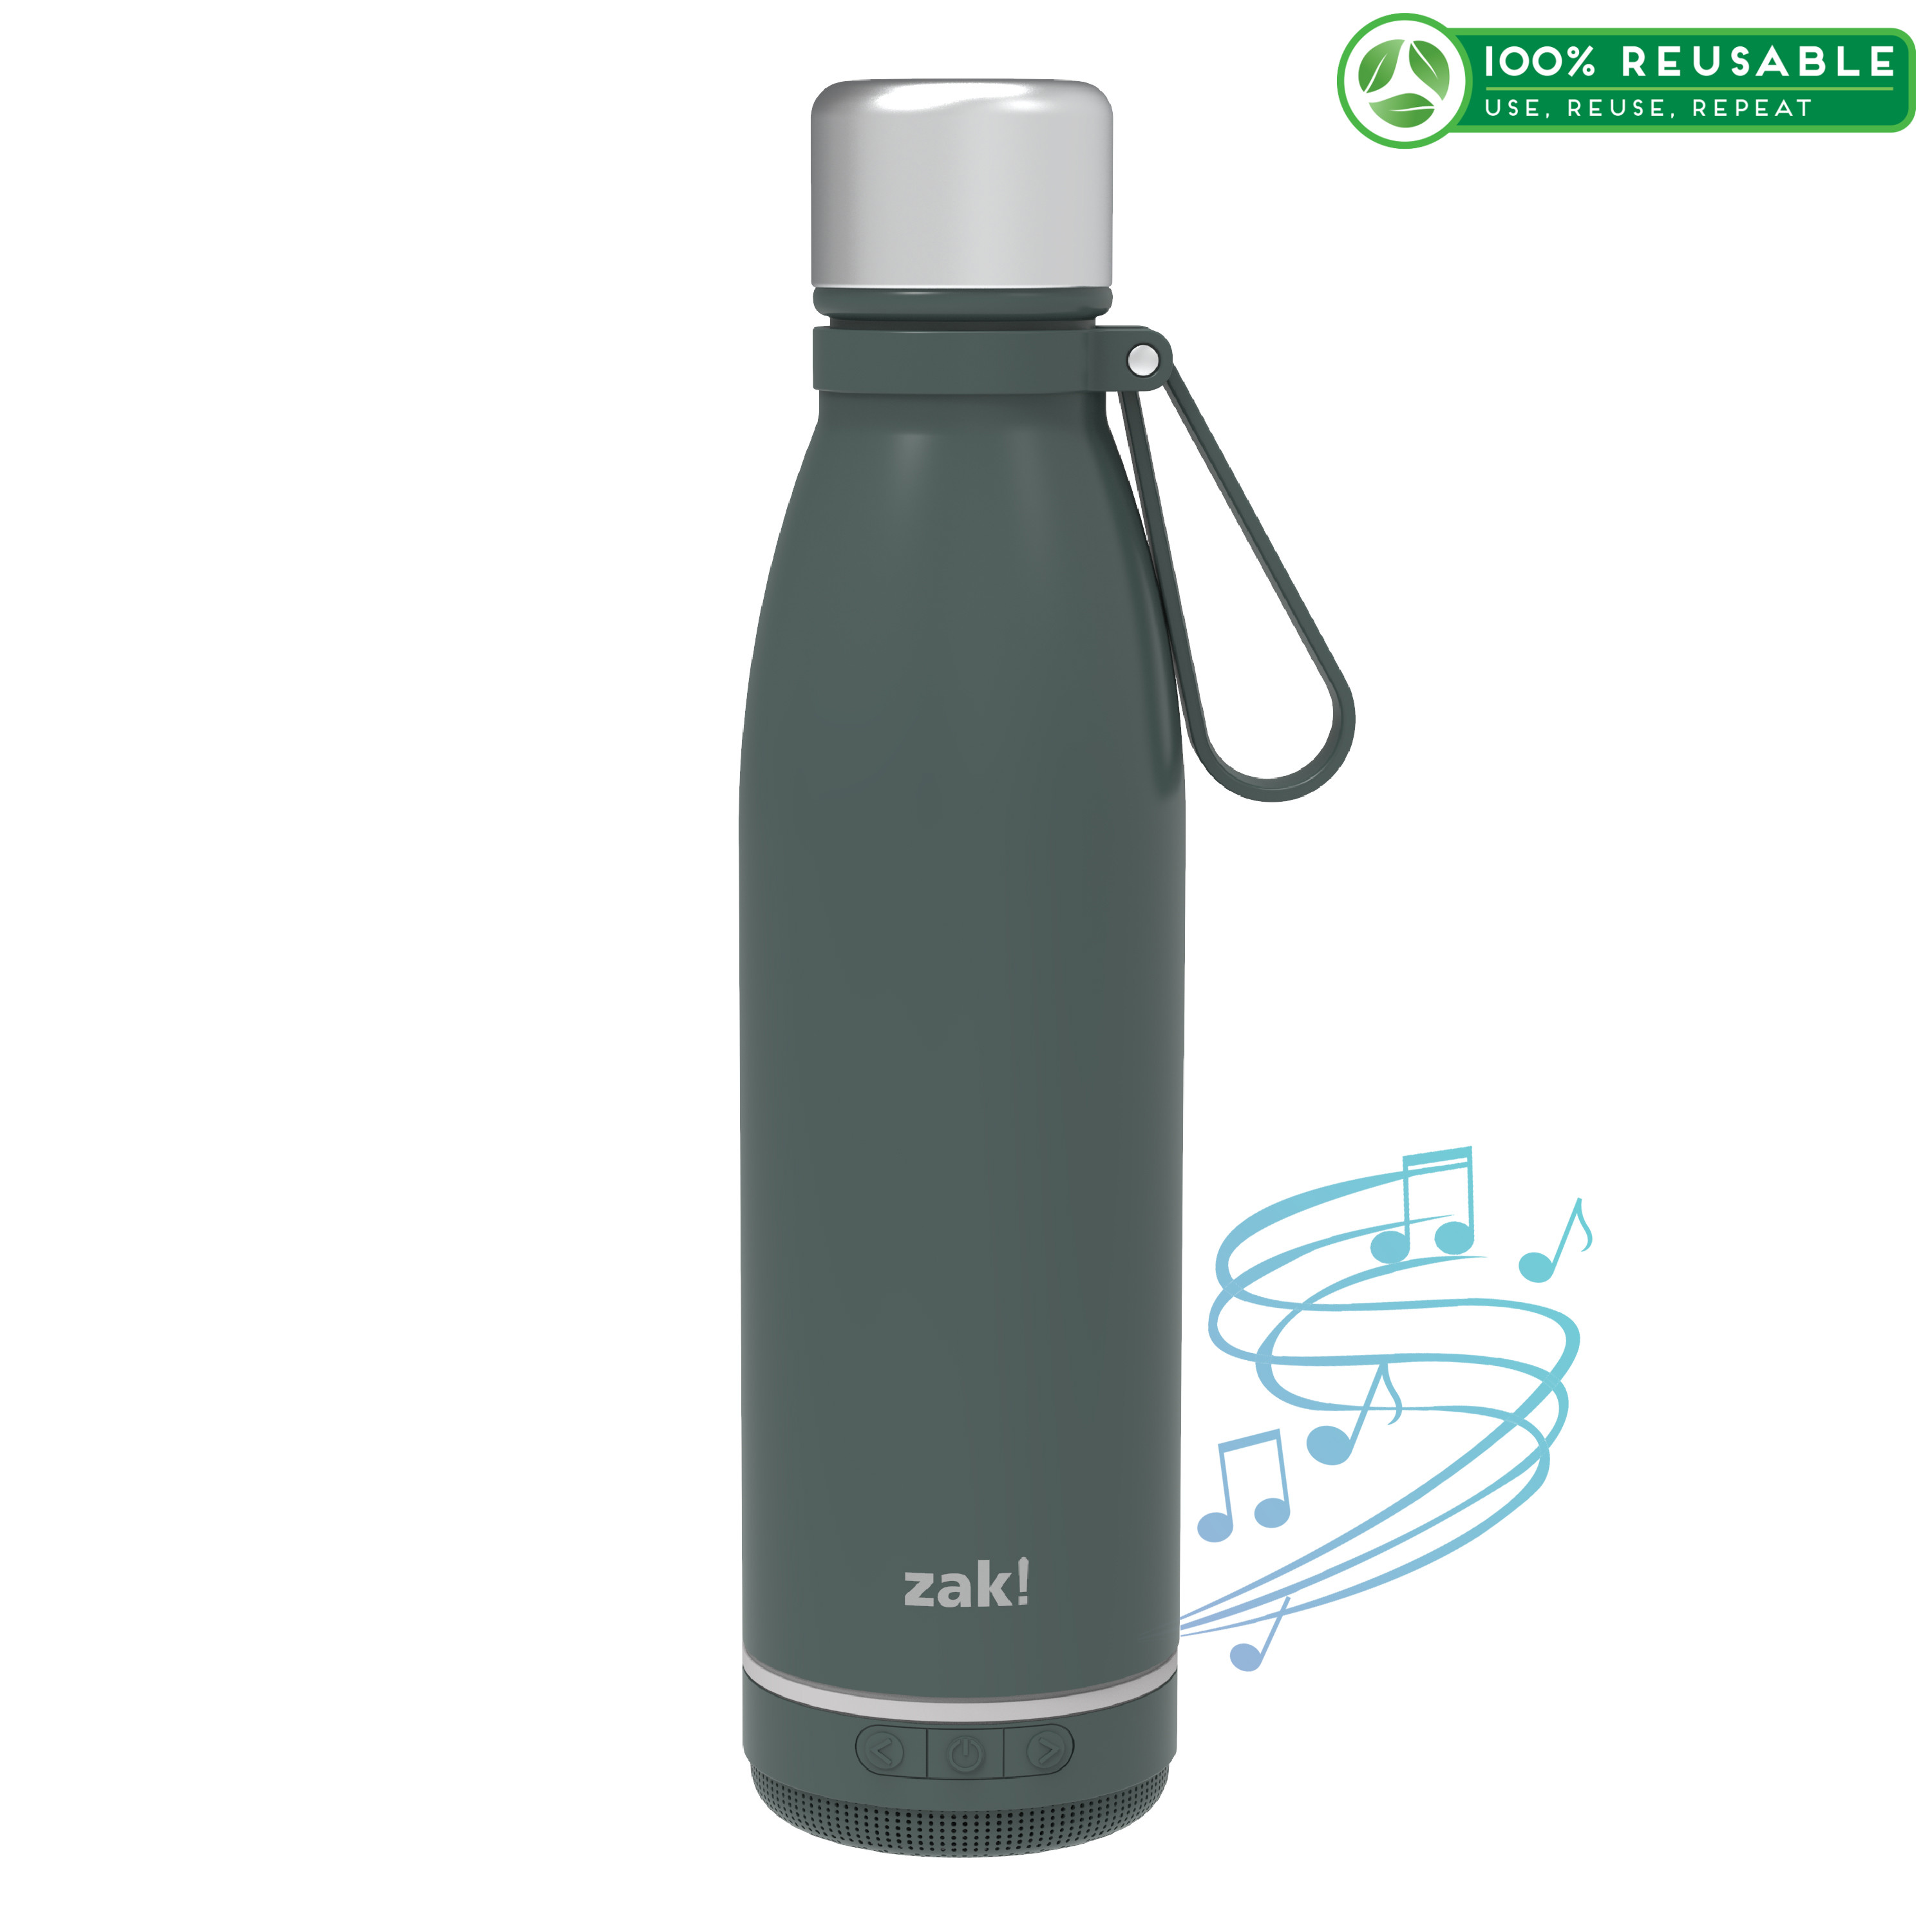 Zak Play 17.5 ounce Stainless Steel Tumbler with Bluetooth Speaker, Gray slideshow image 1